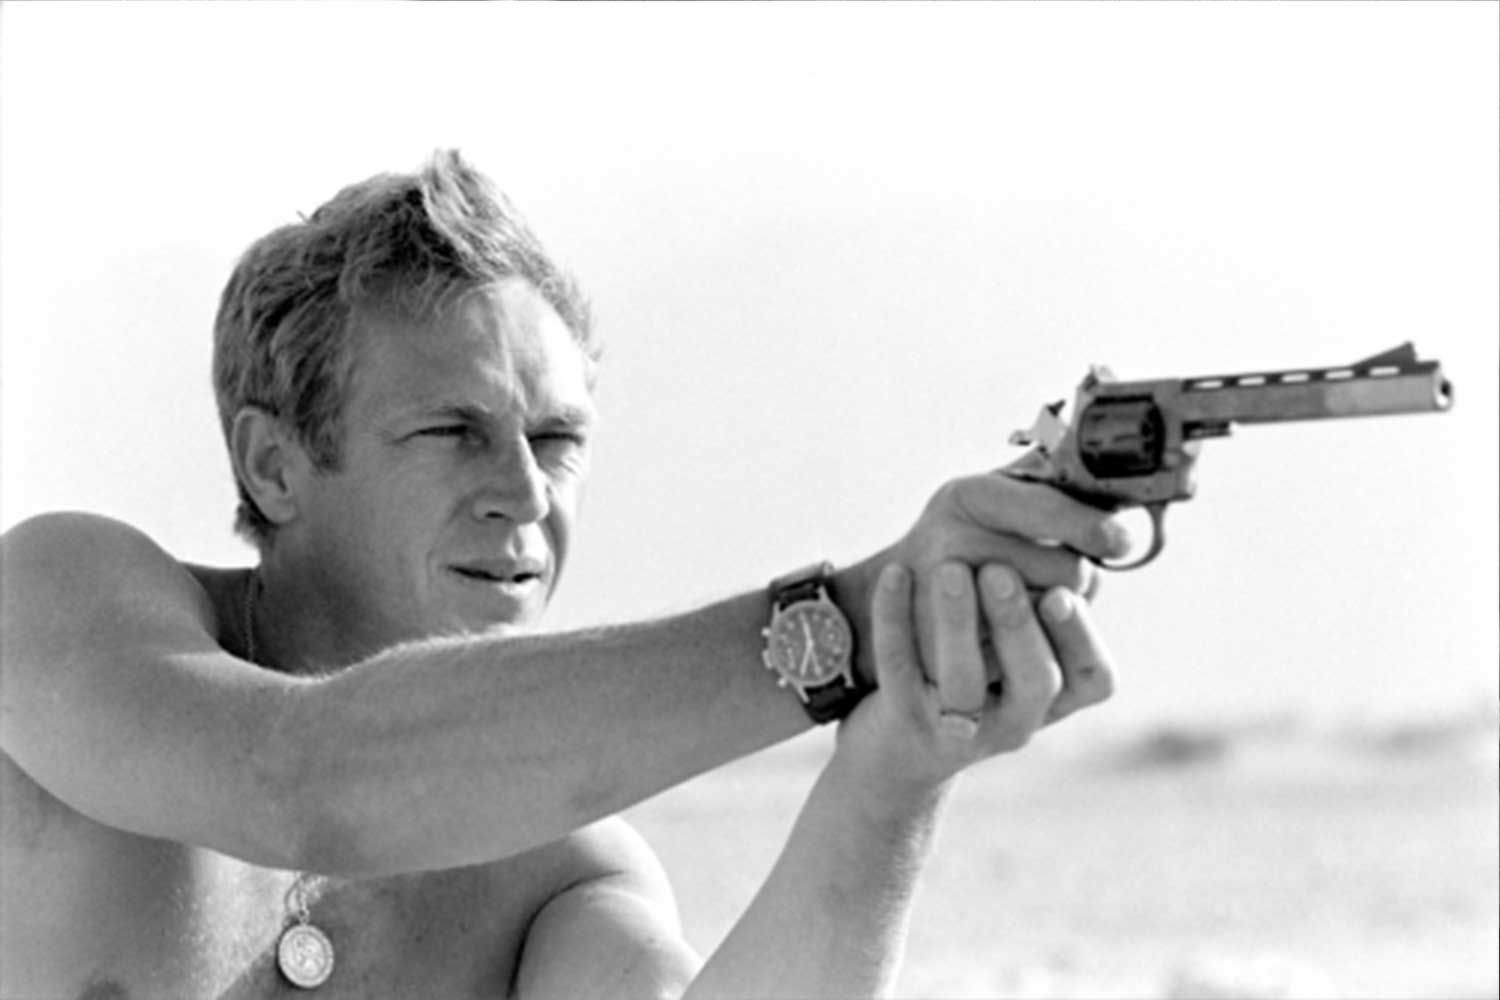 Steve McQueen holding a pistol and taking aim in a desert area around Palm Springs, California June 1963 (Photo by John Dominis/The LIFE Picture Collection via Getty Images)